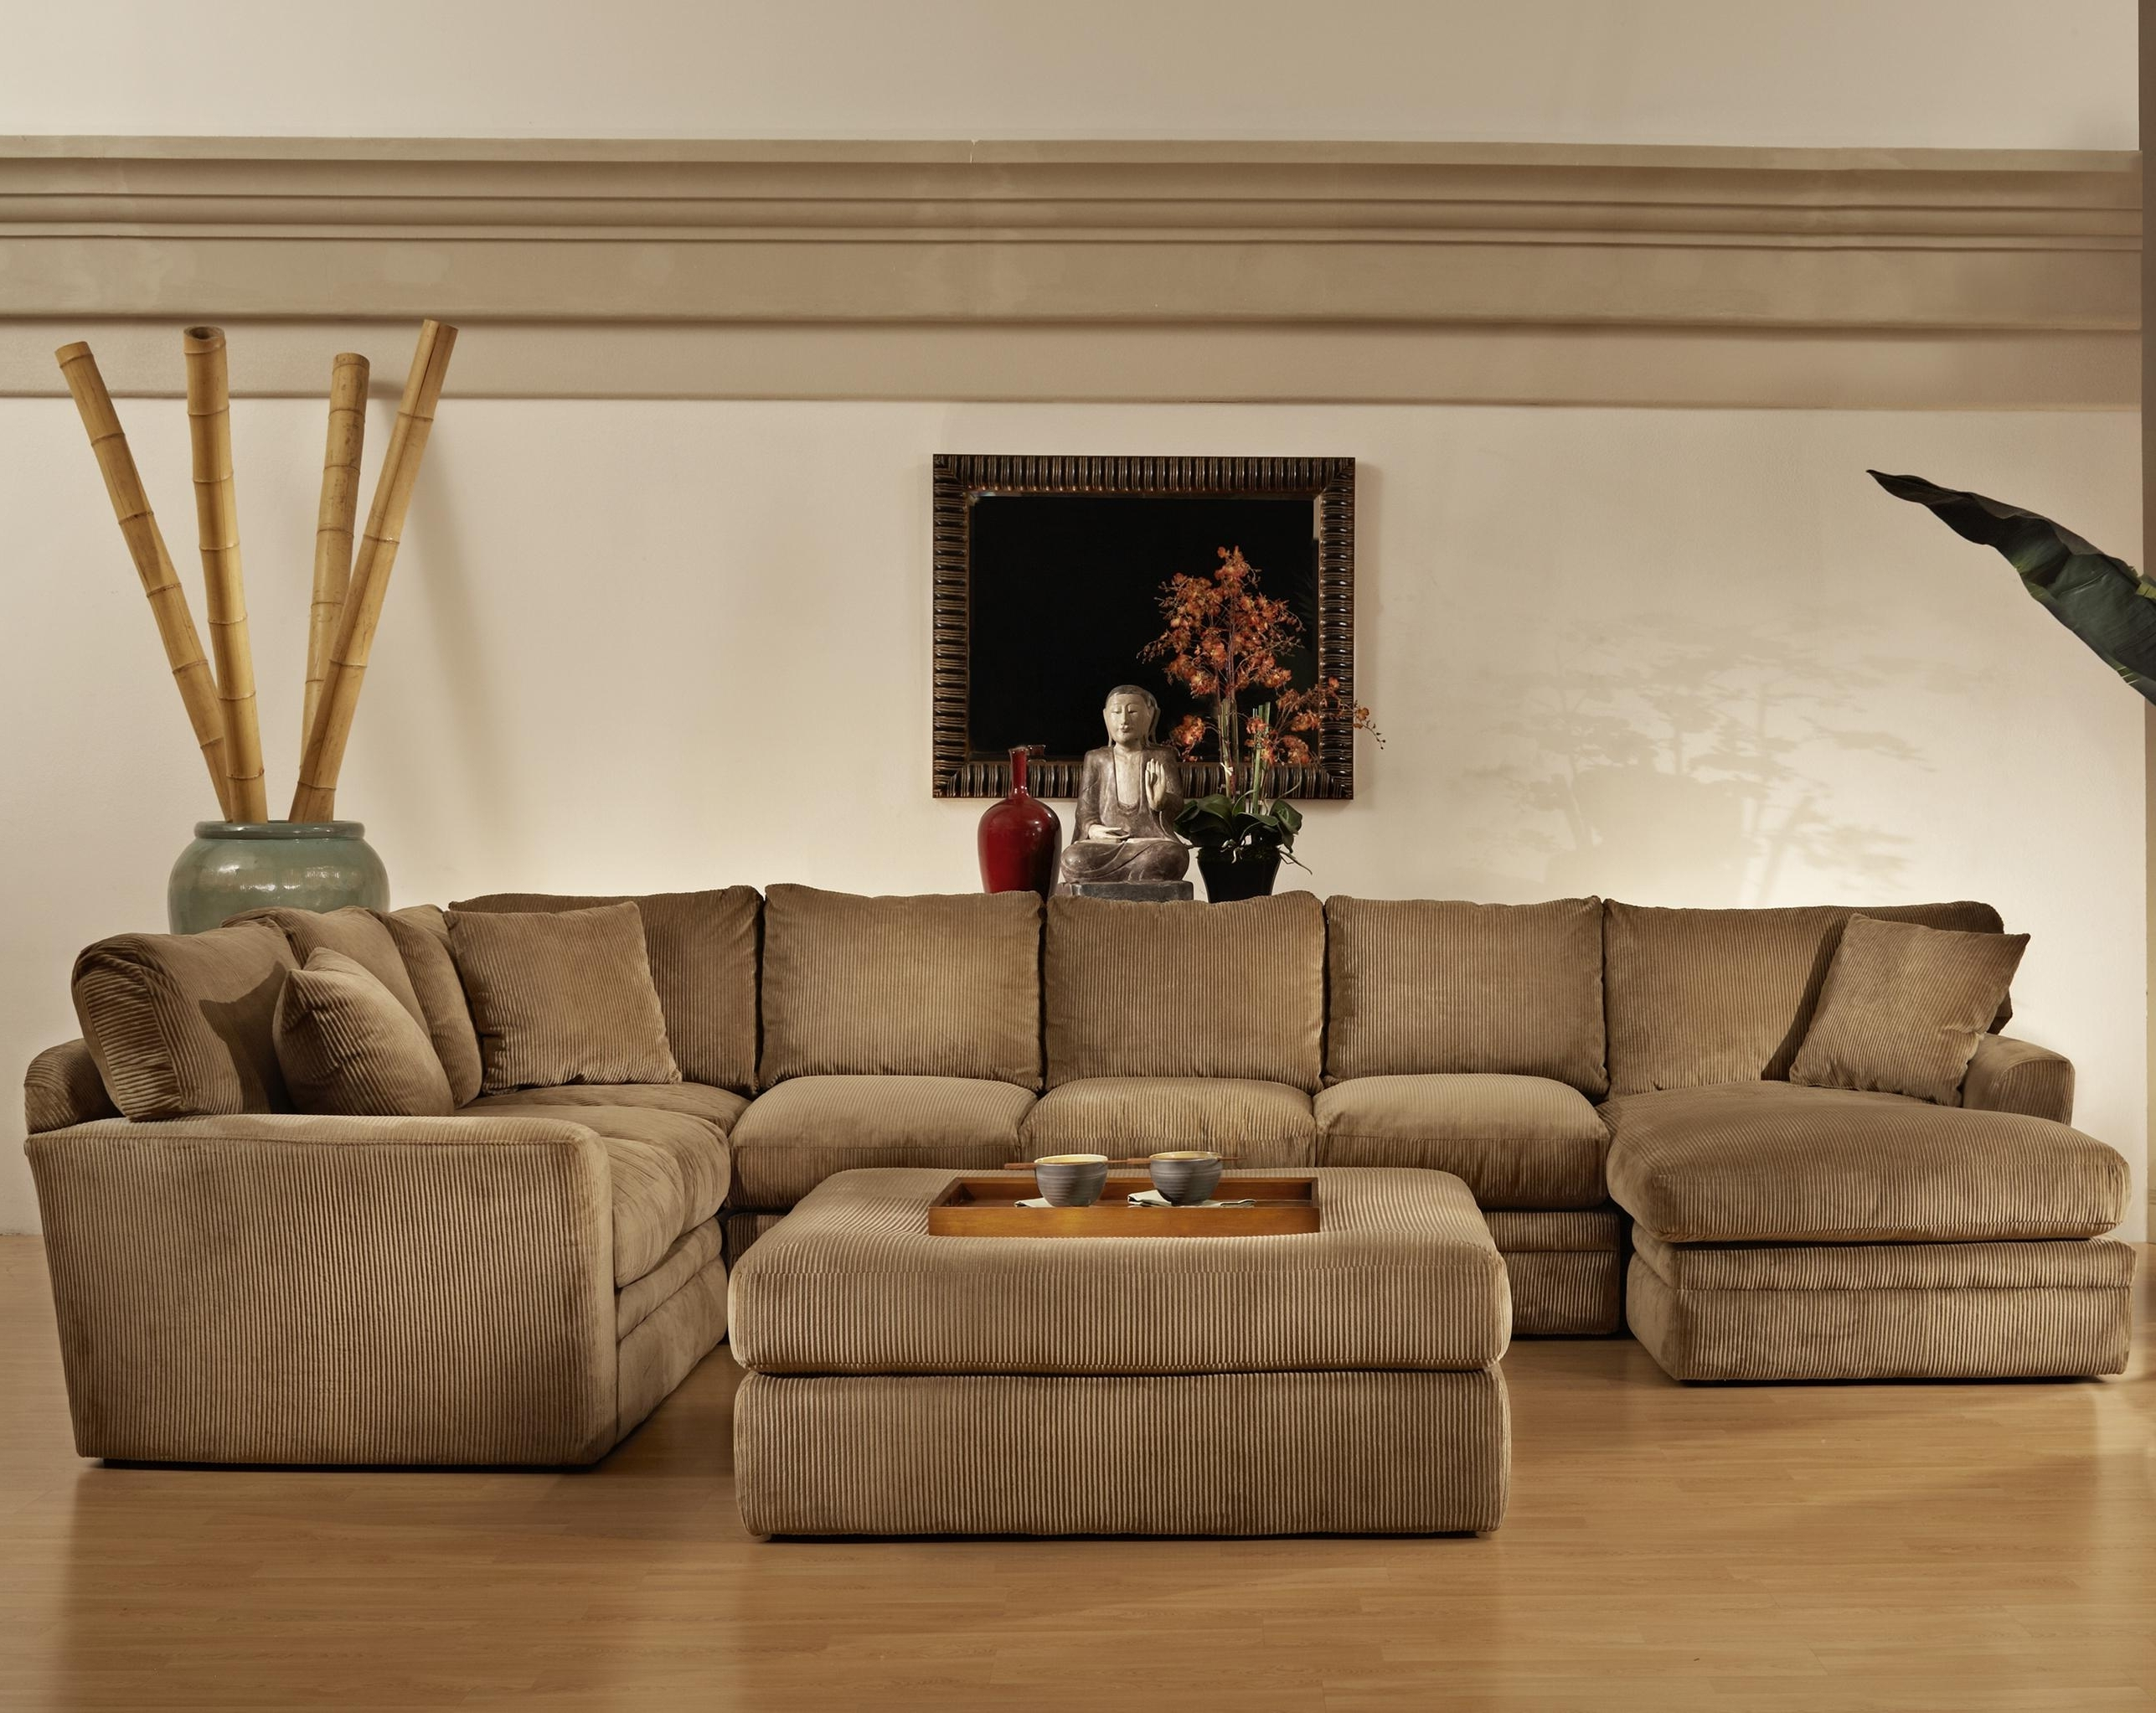 Most Recent Excellent Sectional Sofas With Chaise And Recliner 46 For Your 5 Intended For Sectional Sofas With Chaise And Recliner (View 6 of 15)